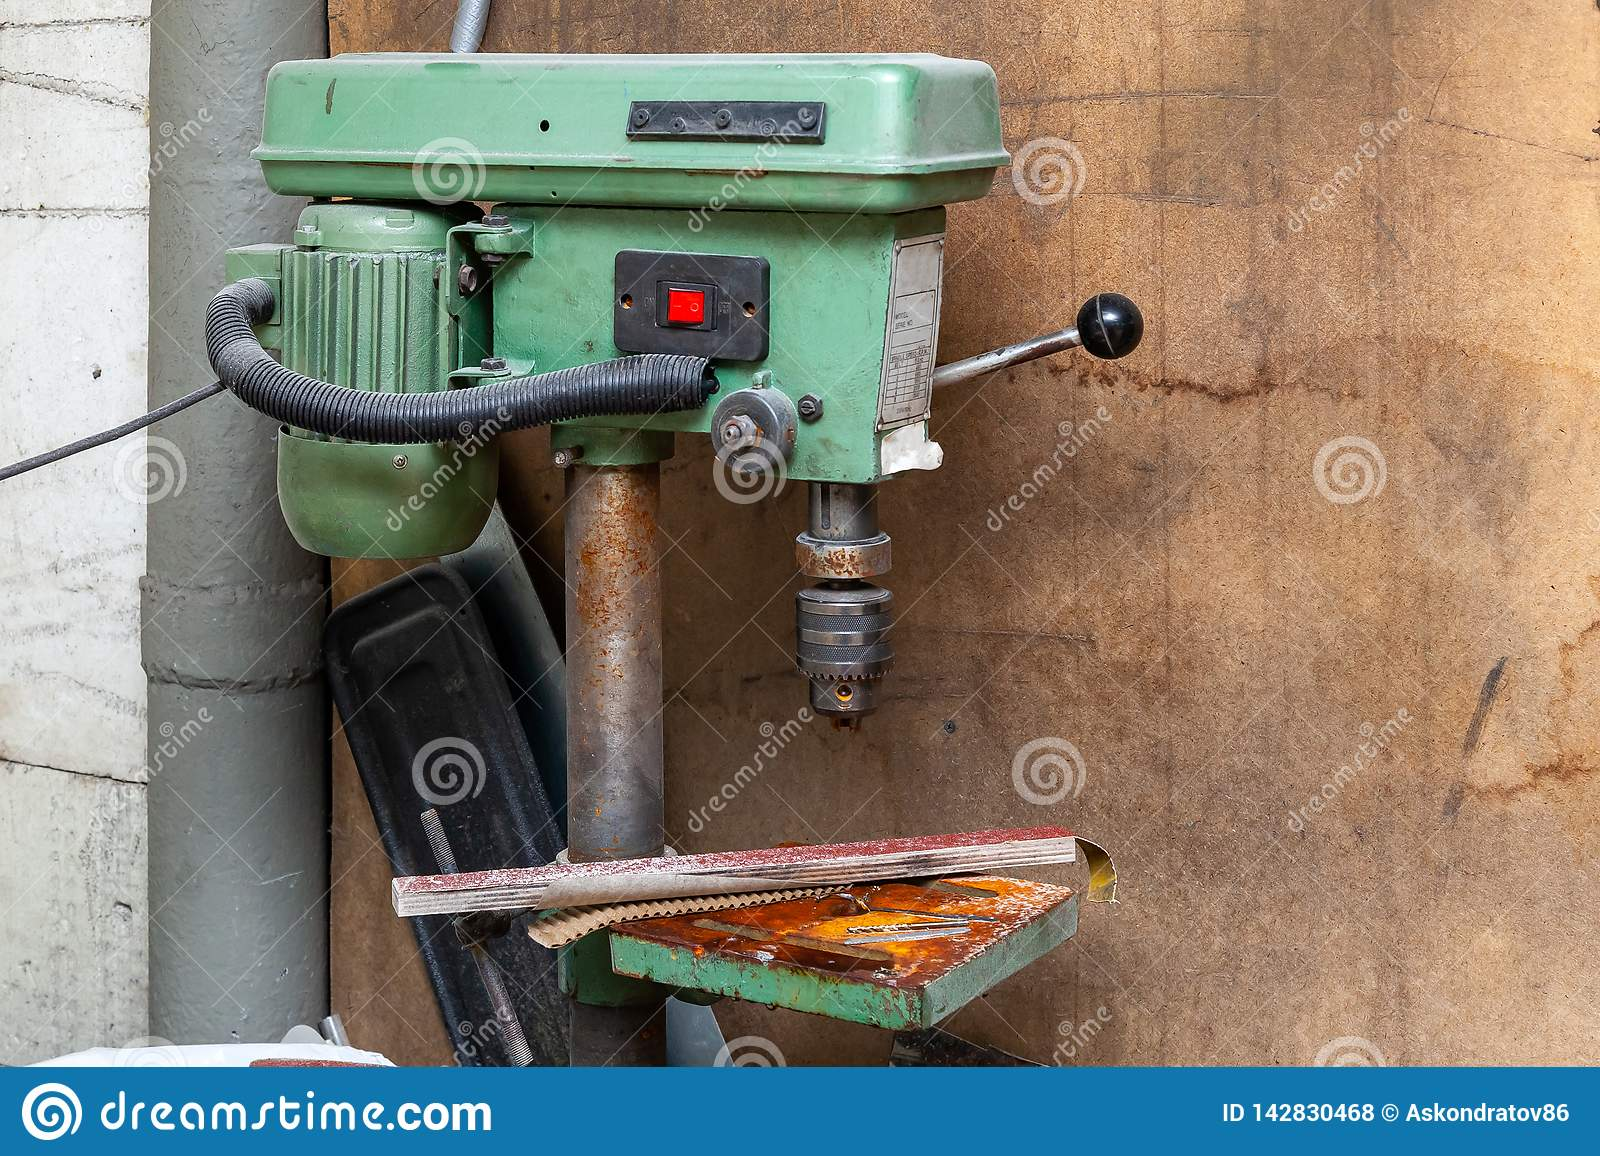 Old Vertical Green Drilling Machine With A Big Red Power